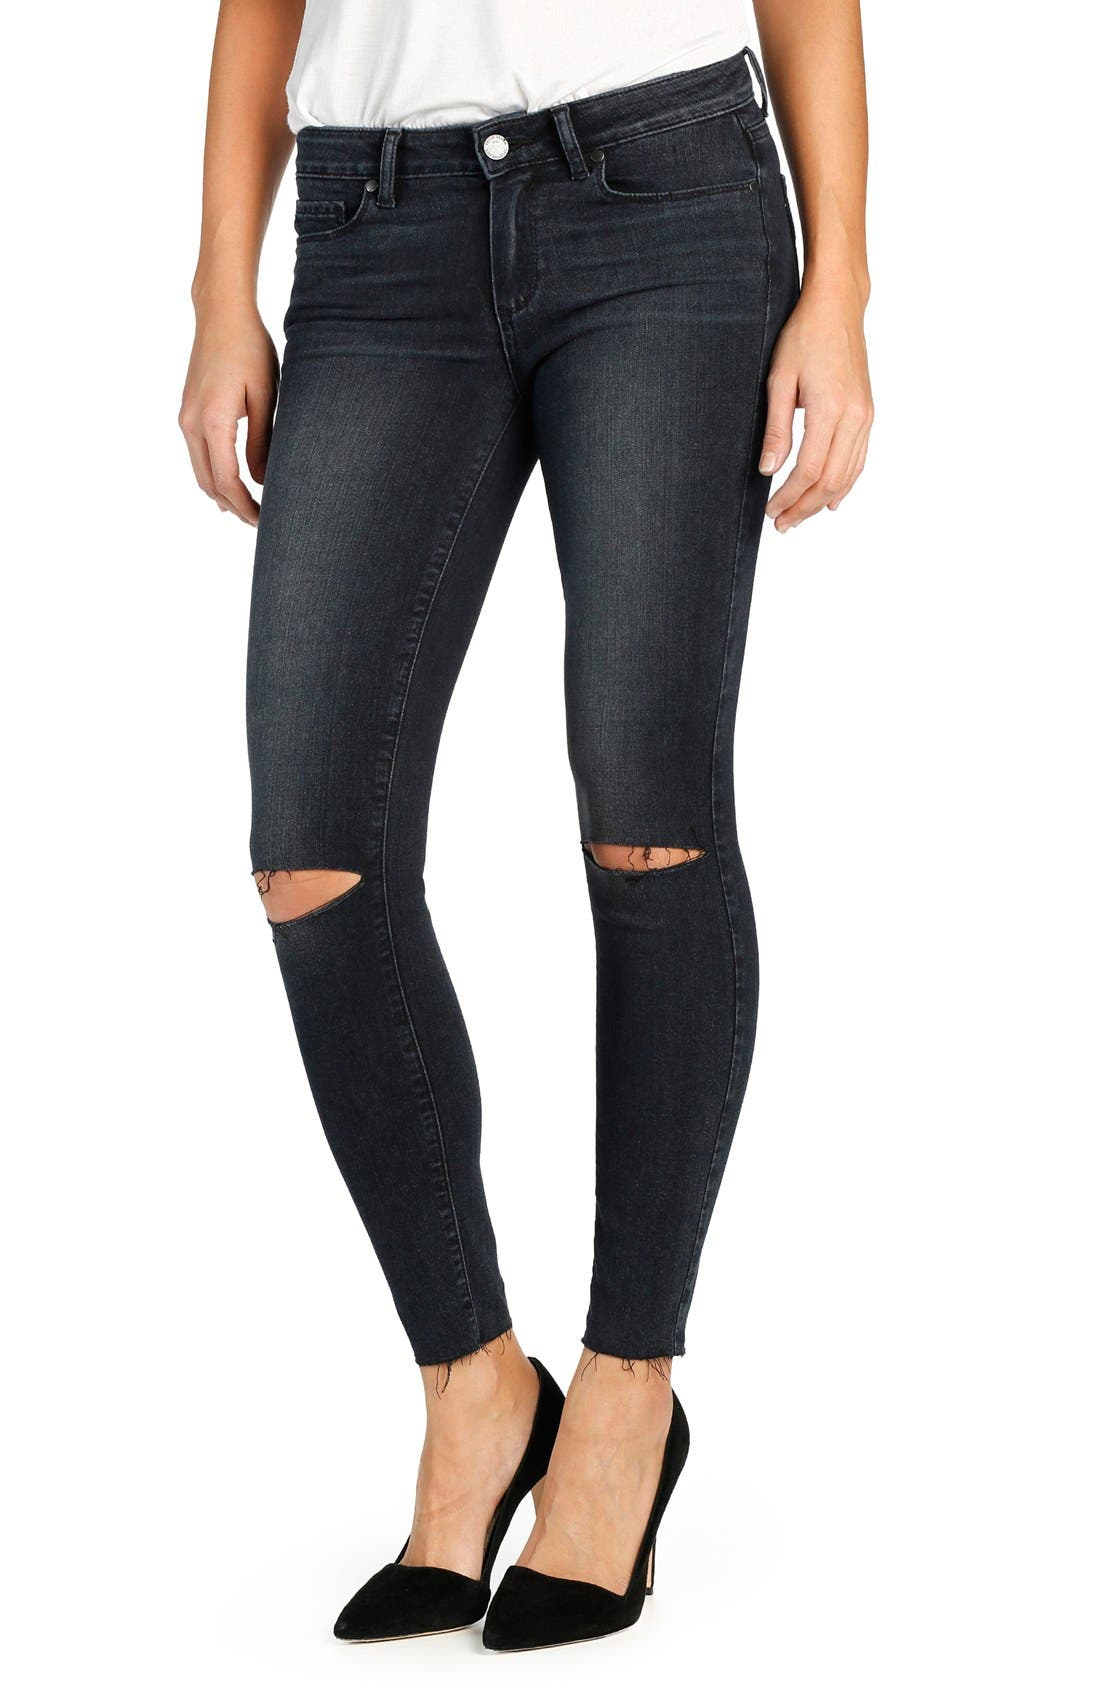 Main Image - PAIGE Transcend Verdugo Ripped Ankle Ultra Skinny Jeans (Kaleea Destructed)